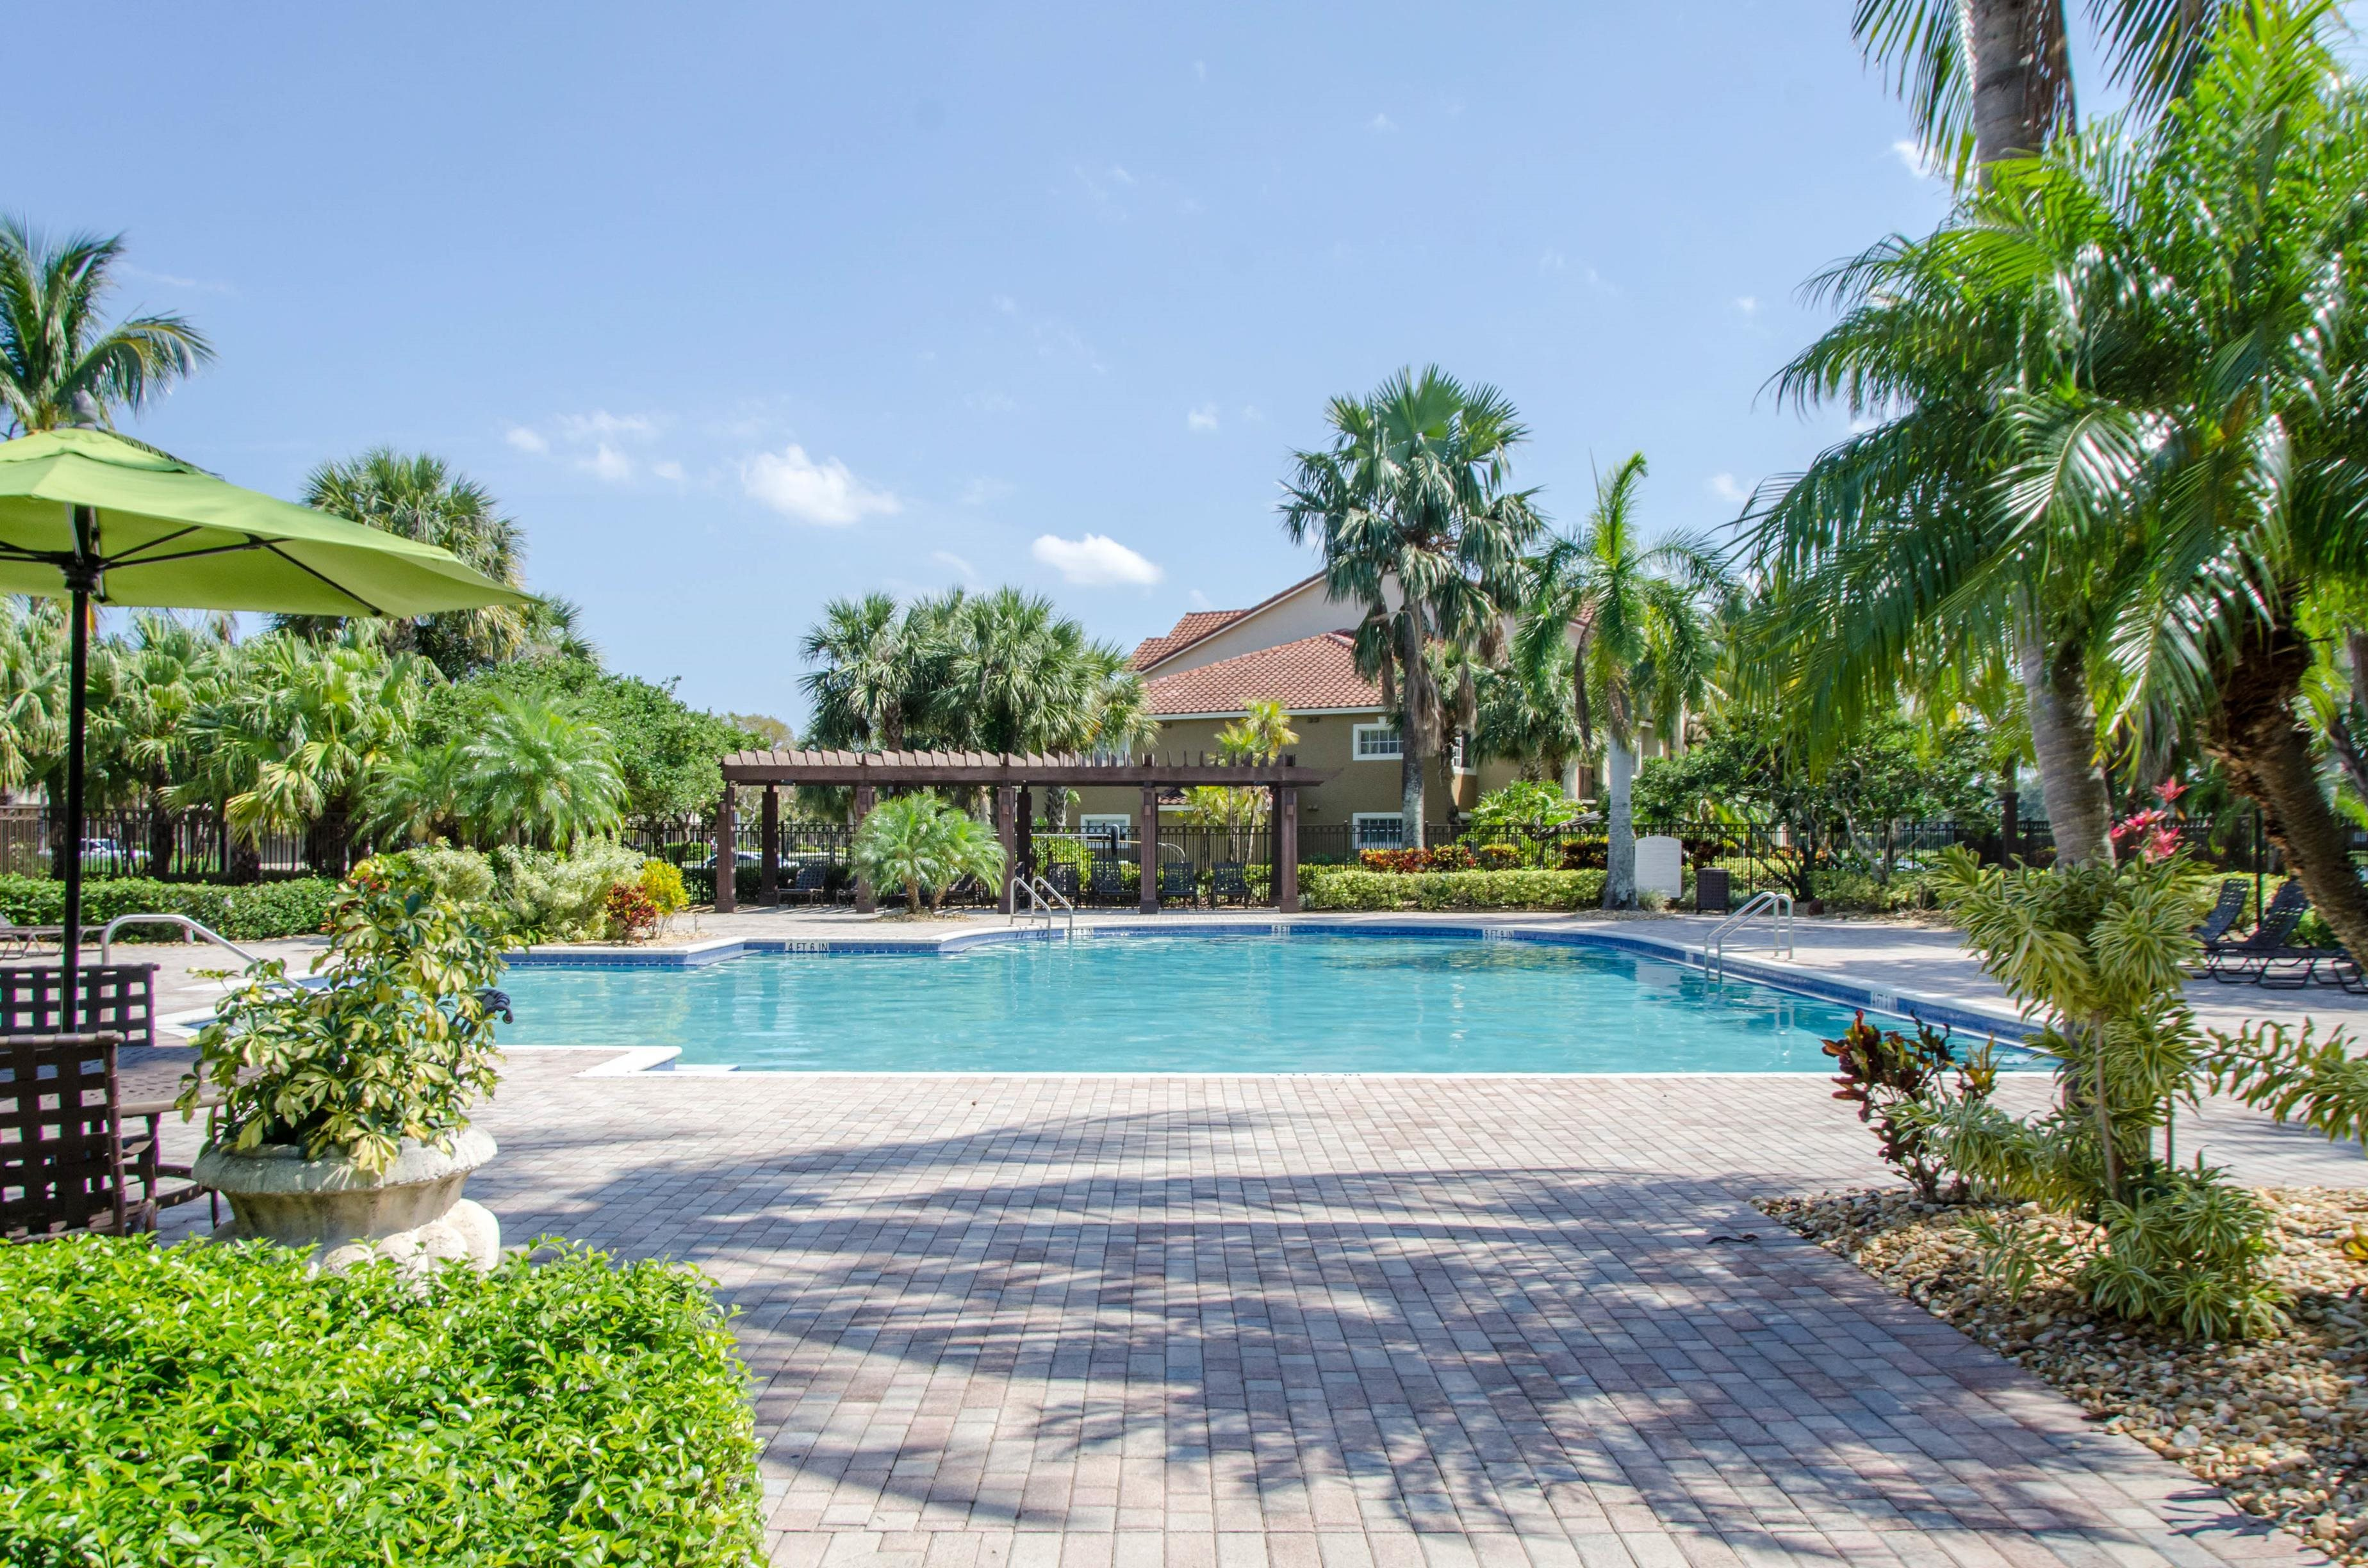 Seasonal Beautiful Outdoor Swimming Pool at Oasis Delray Apartments, 5600 W. Atlantic Ave., Delray Beach, FL